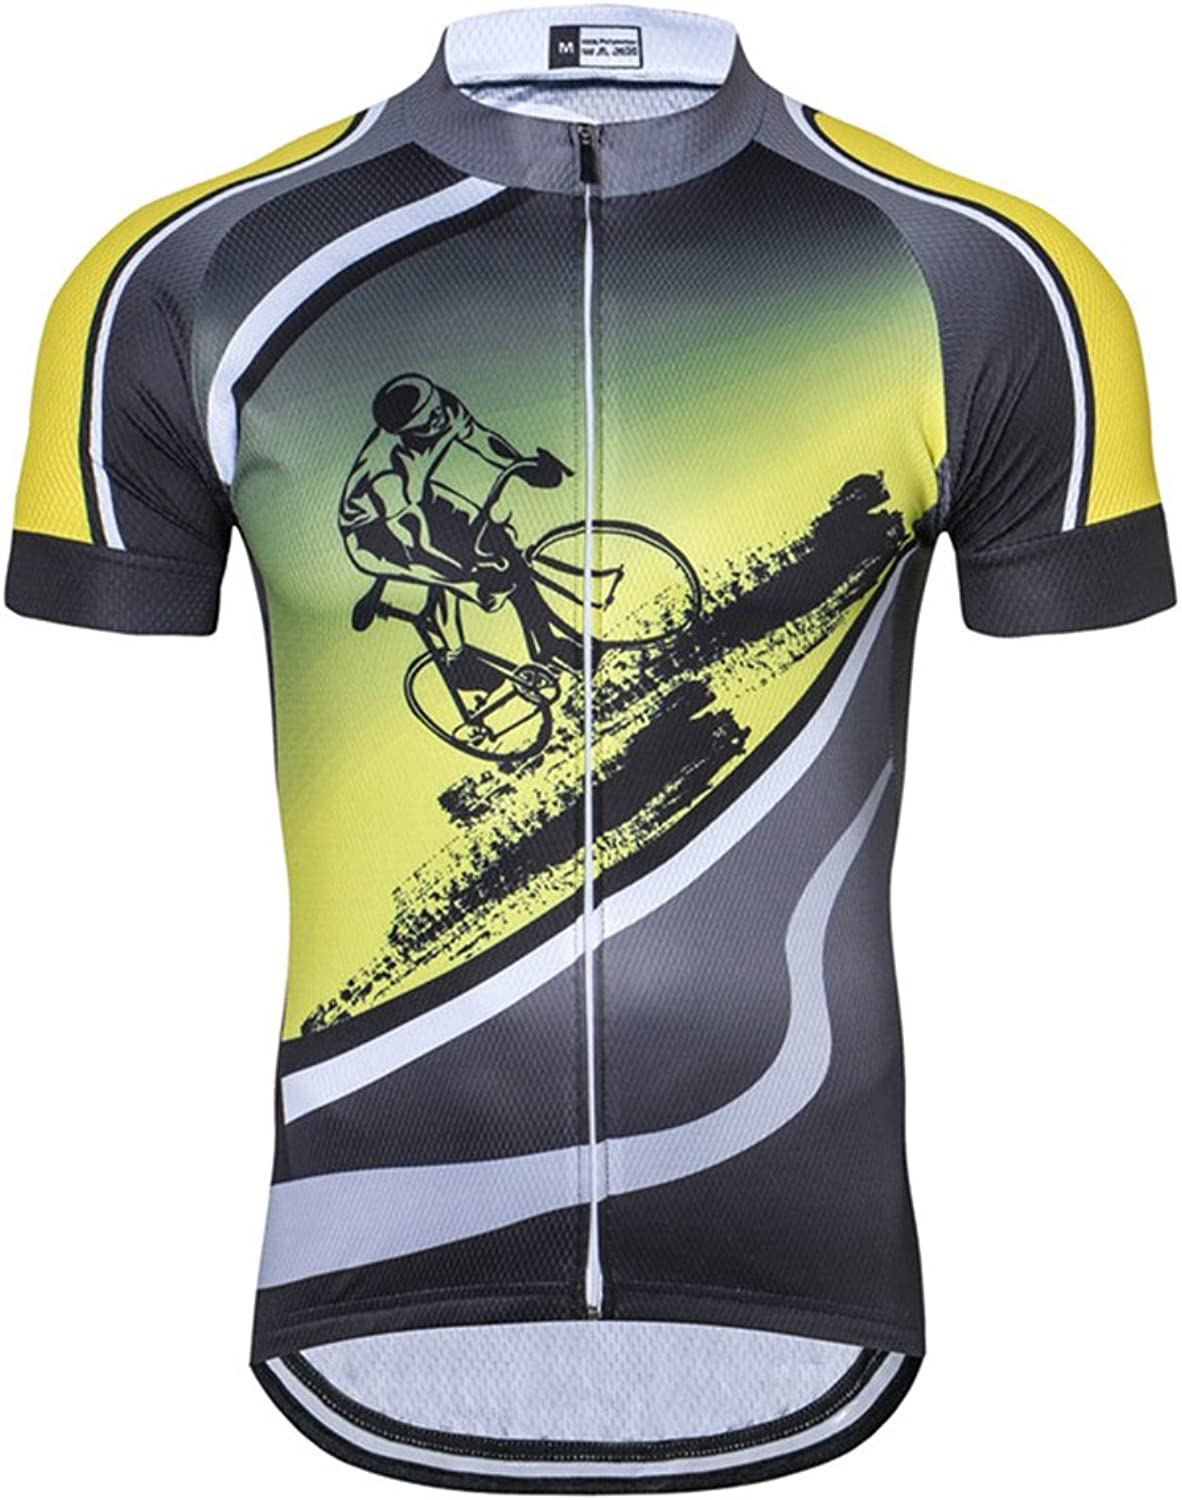 Cycling Jersey Men Racing Sport Team Clothing MTB Bike Breathable Bicycle Wear